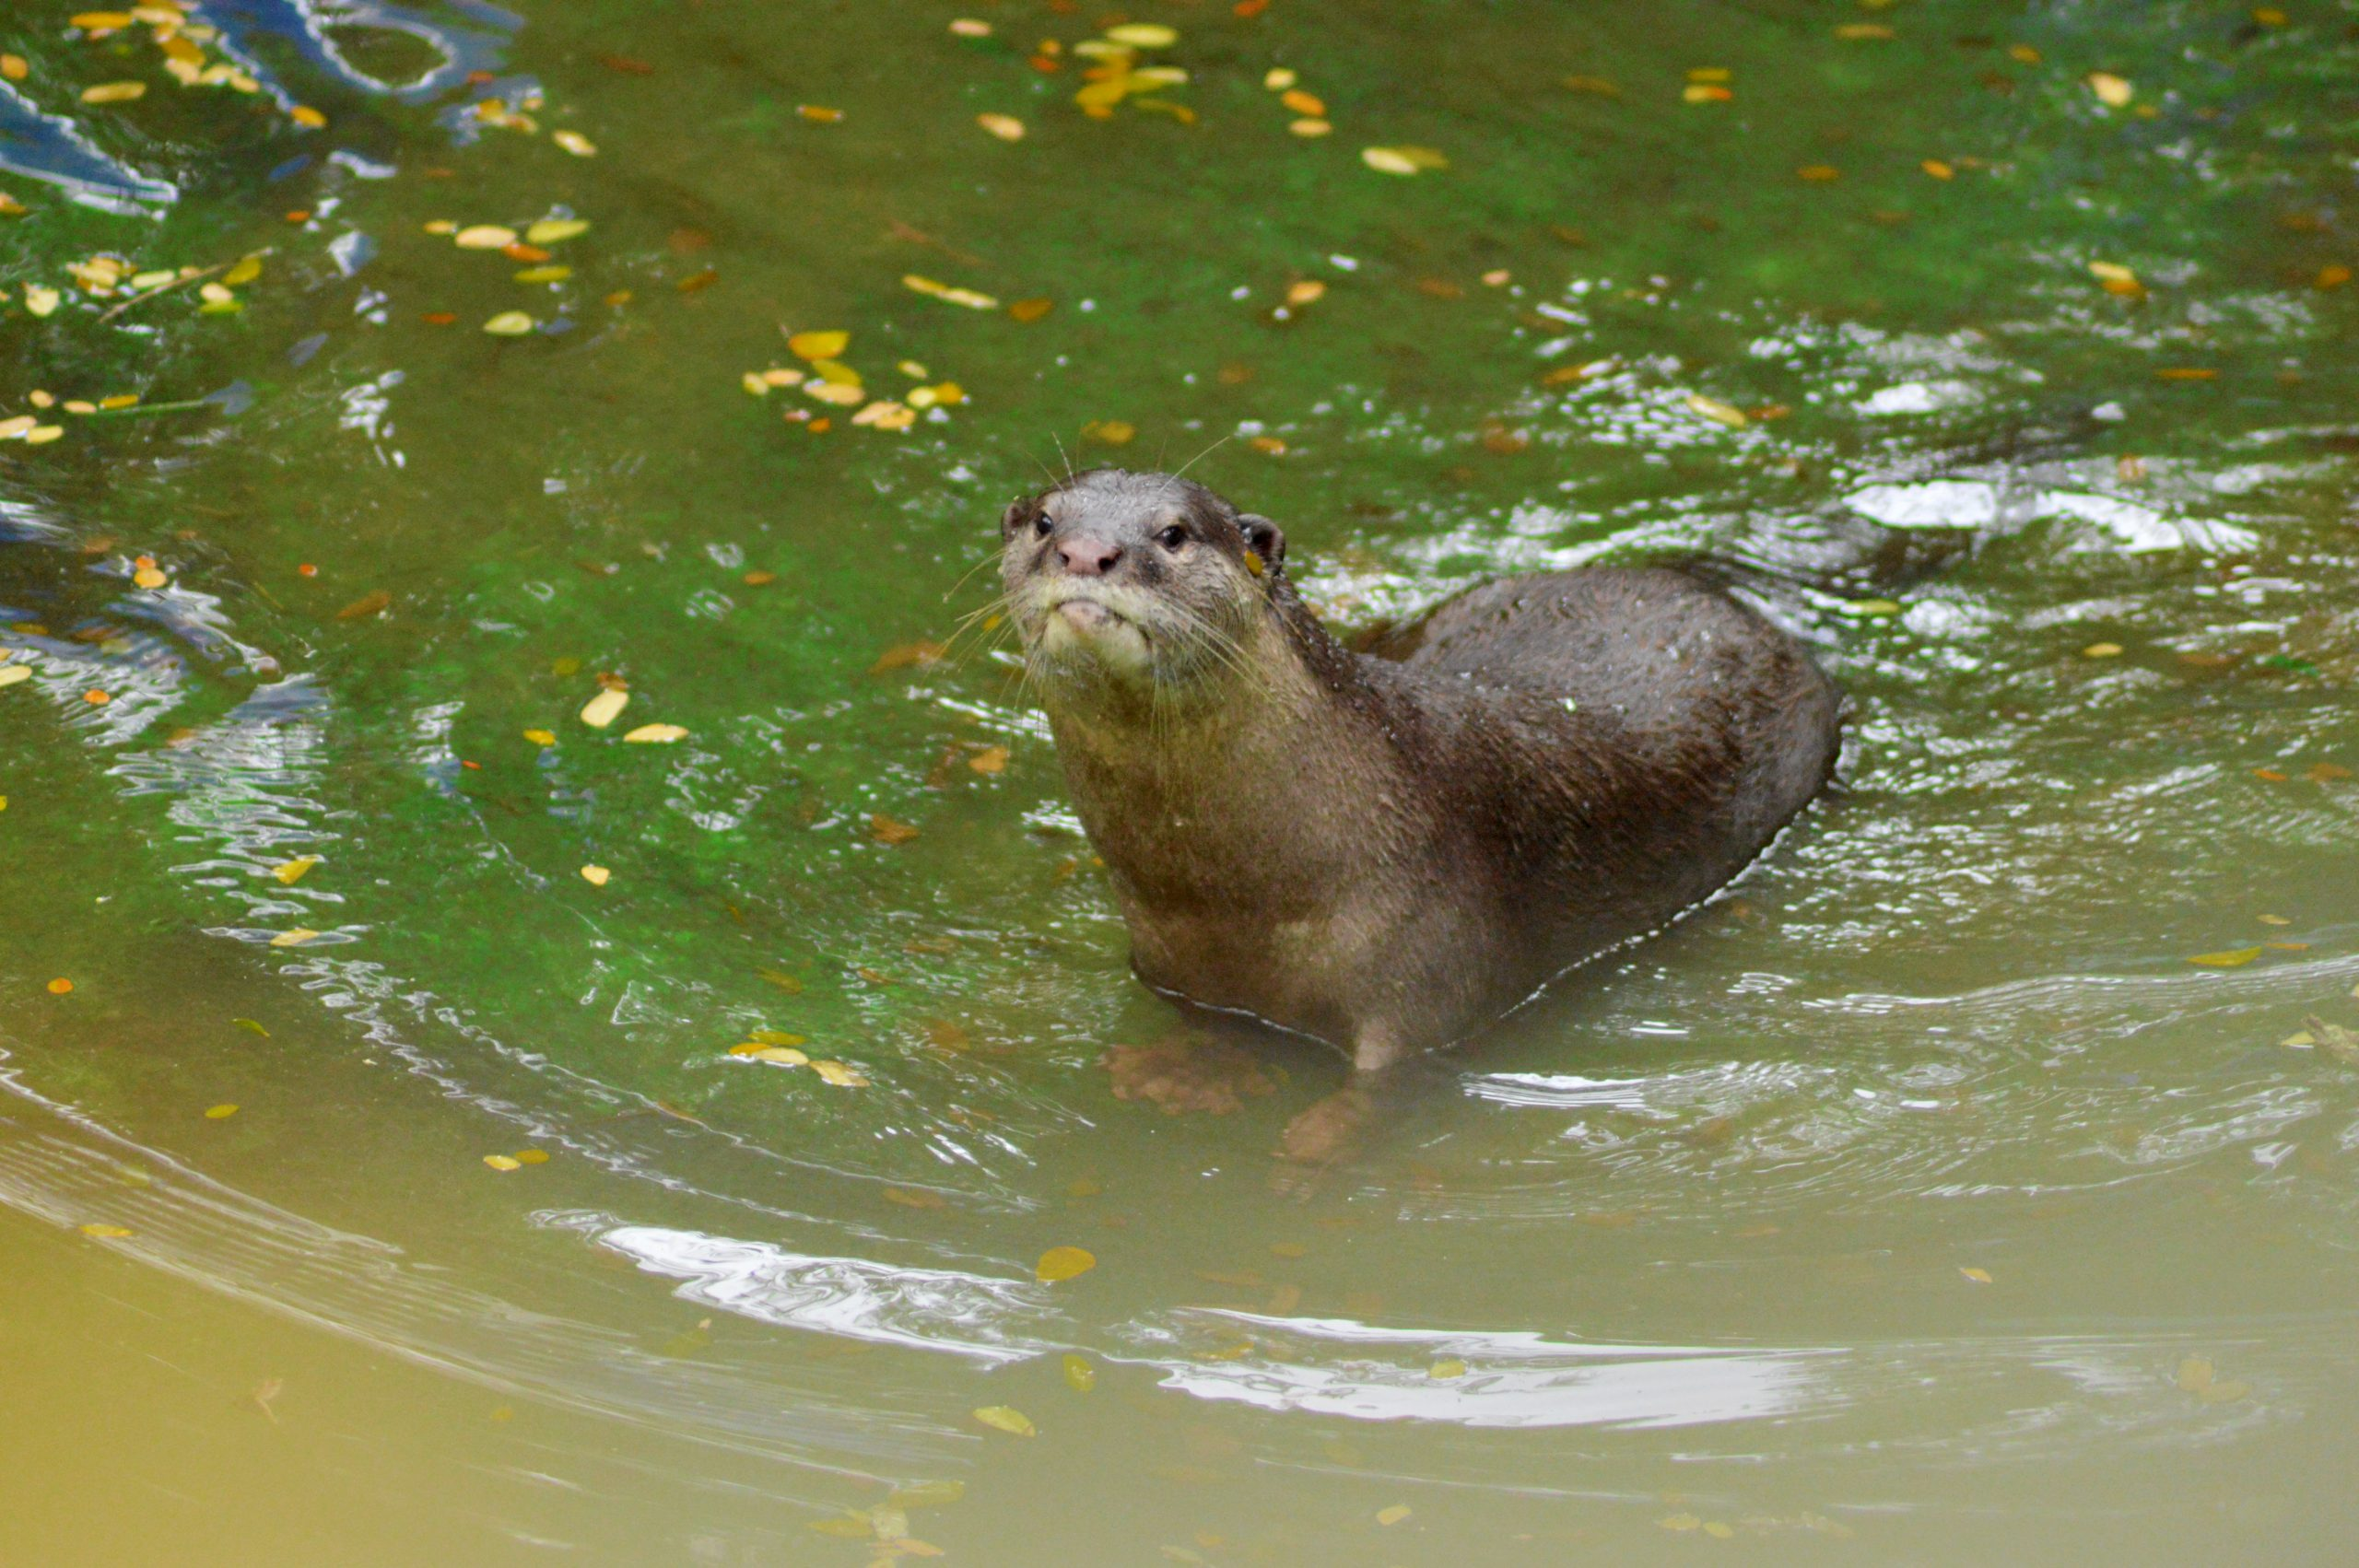 An otter in water